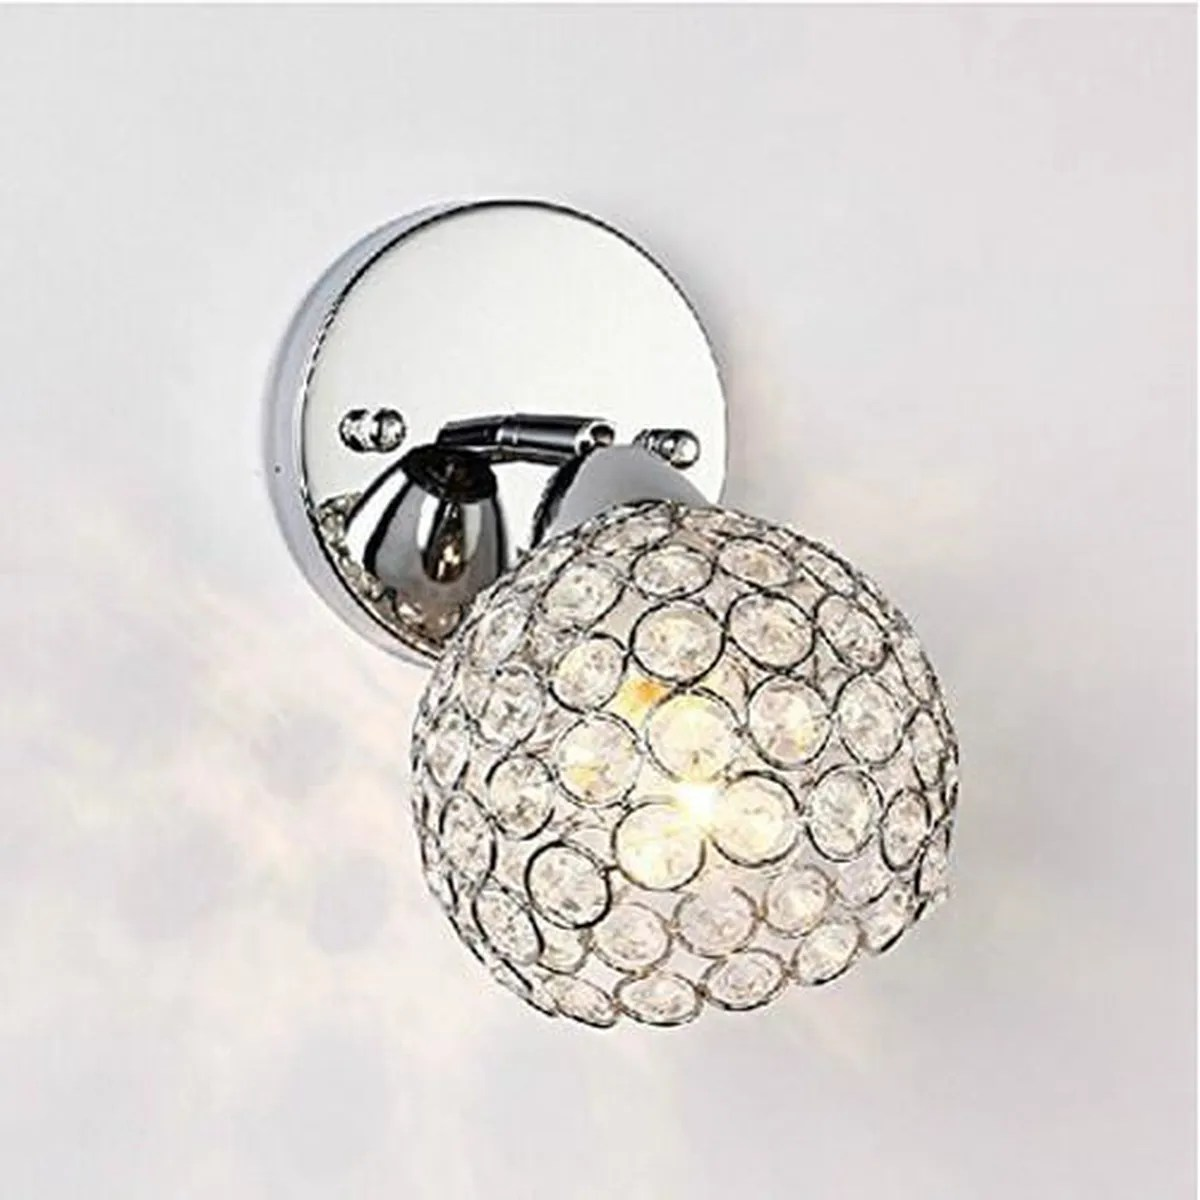 Luminaire Mural Chambre Lightess Applique Murale Design Cristal 1 Ampoule Incandescent